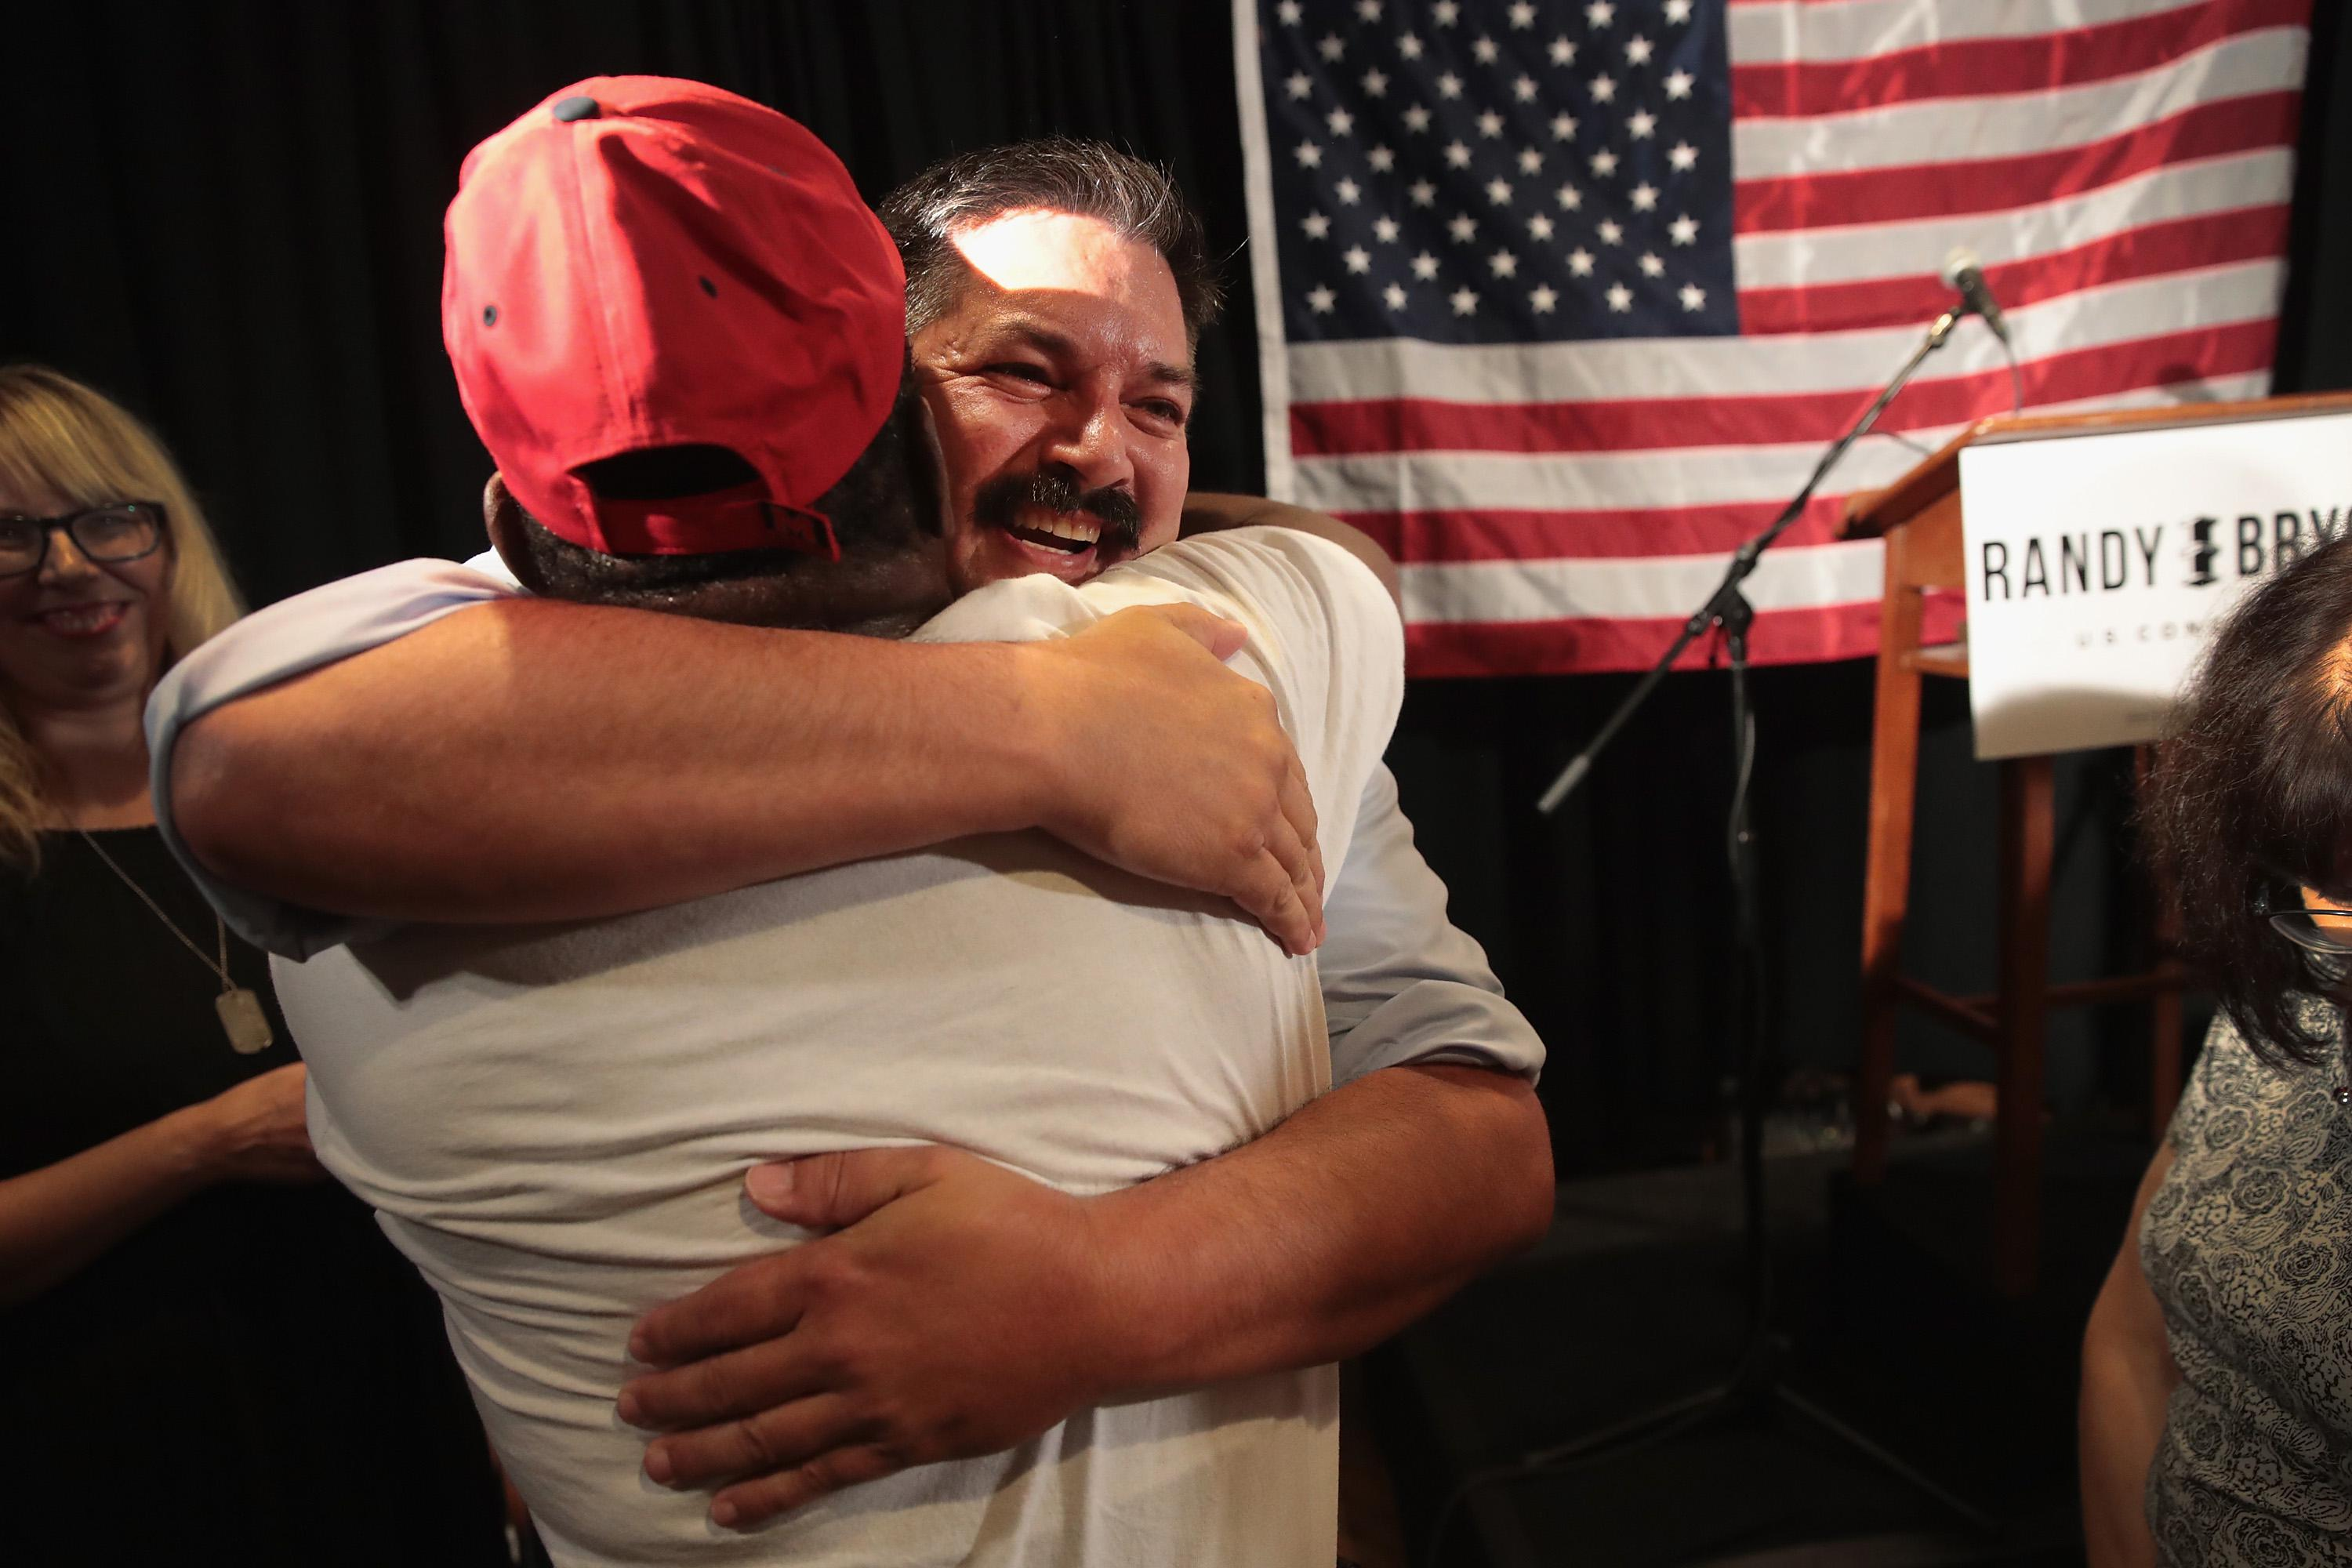 Randy Bryce hugs a supporter at an election-night rally.